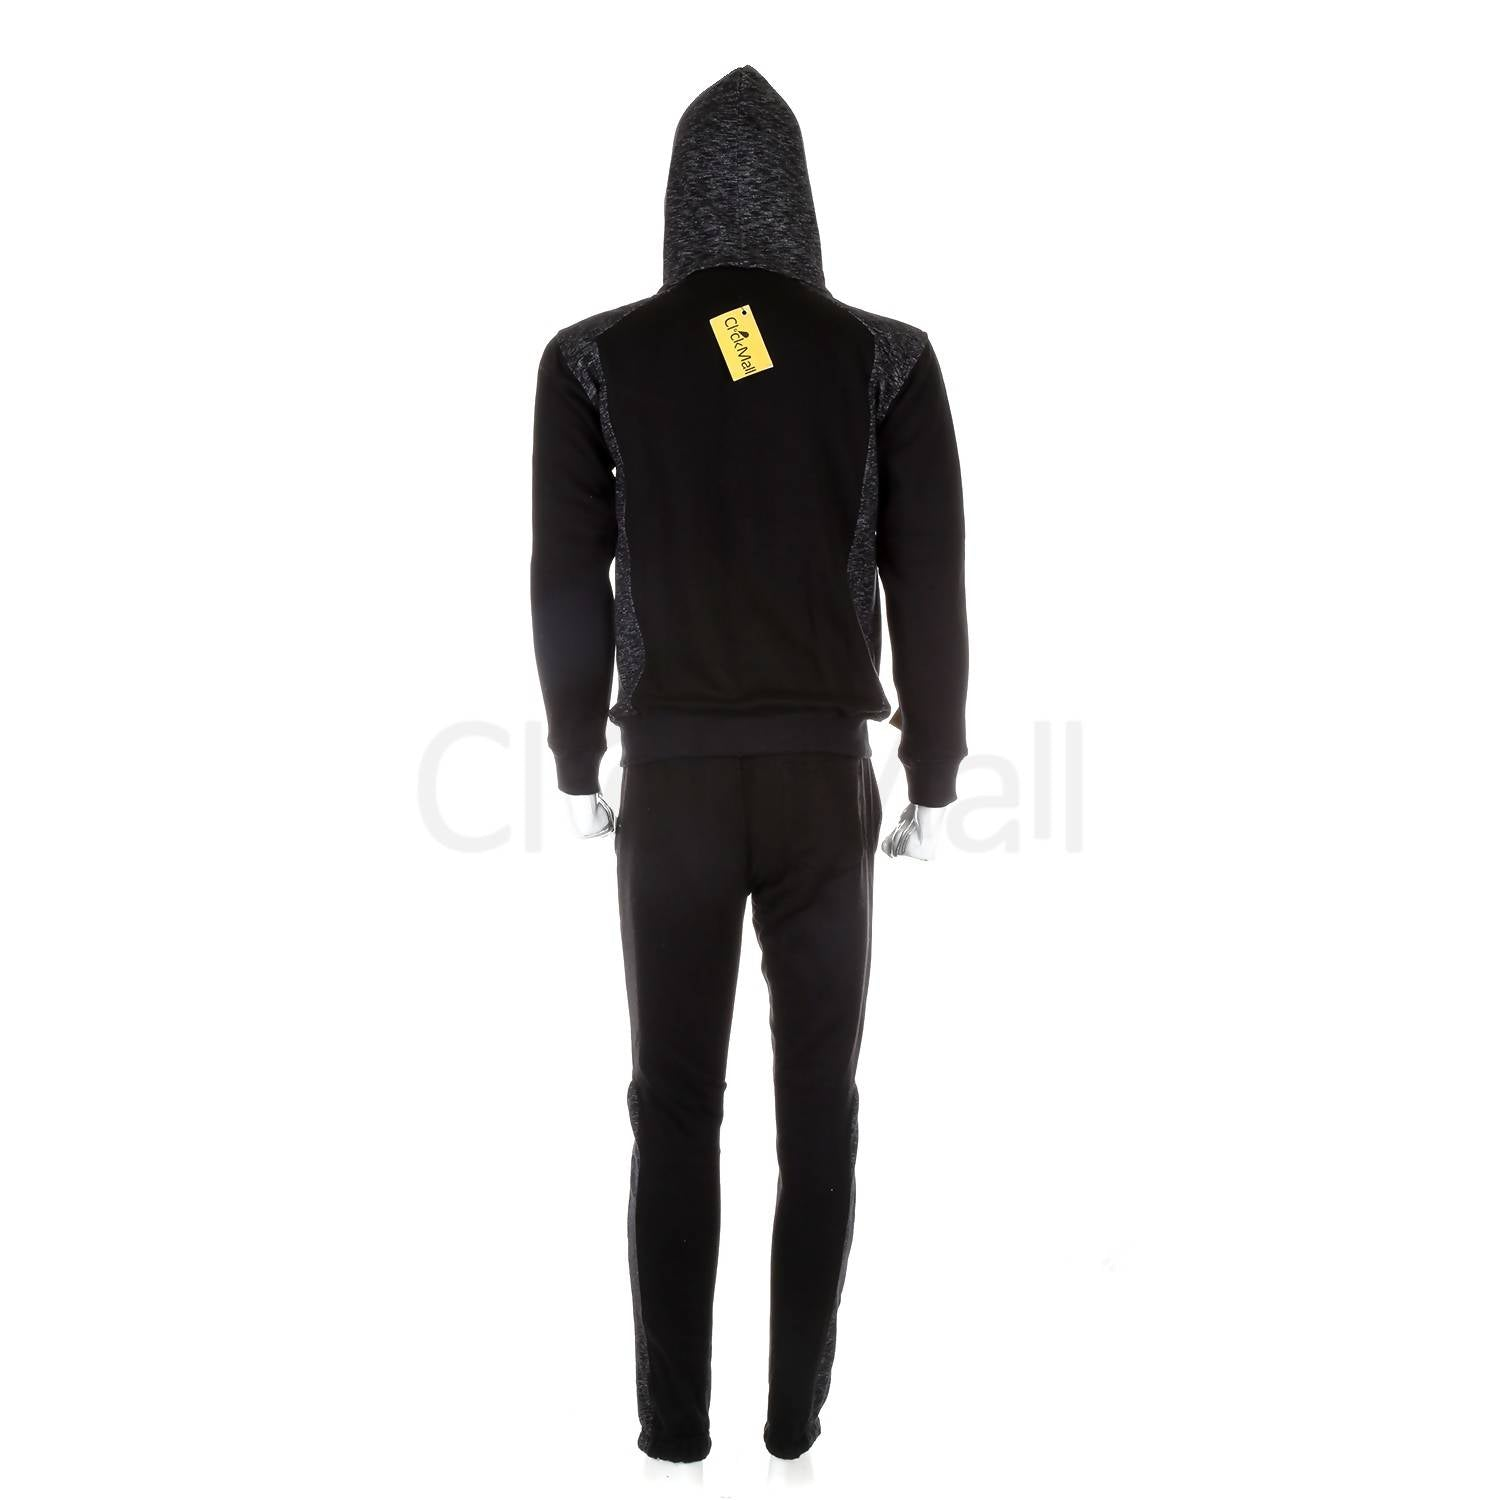 TRACK SUIT TS-12